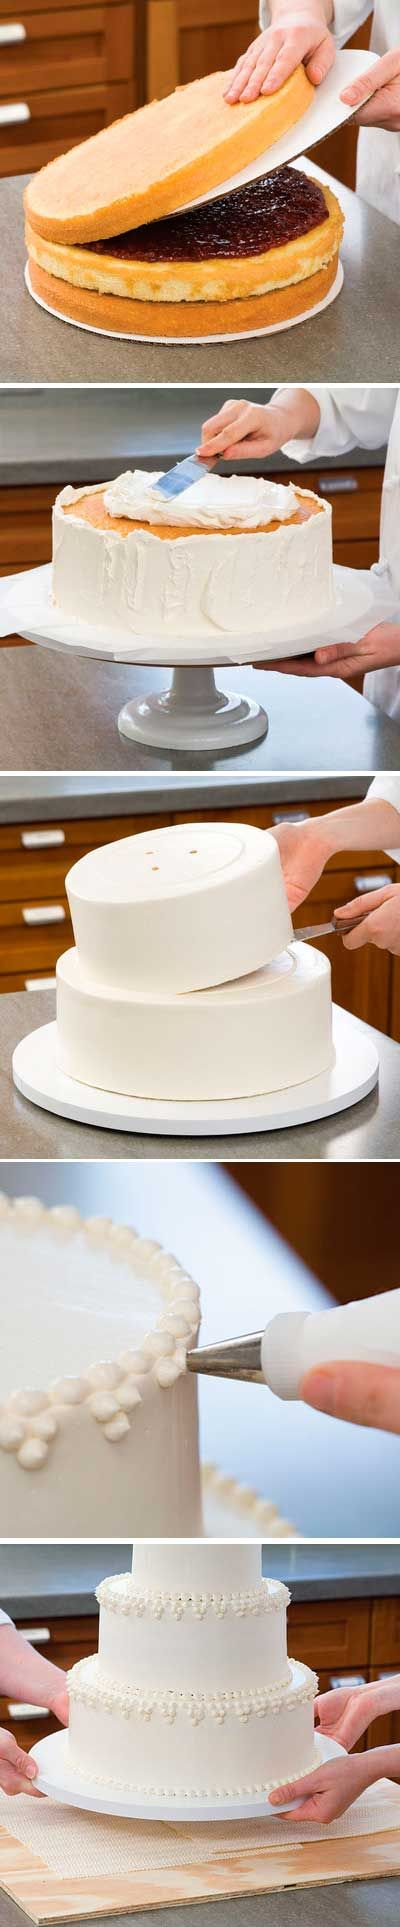 Secrets to making a wedding cake. GREAT information and pictorial!